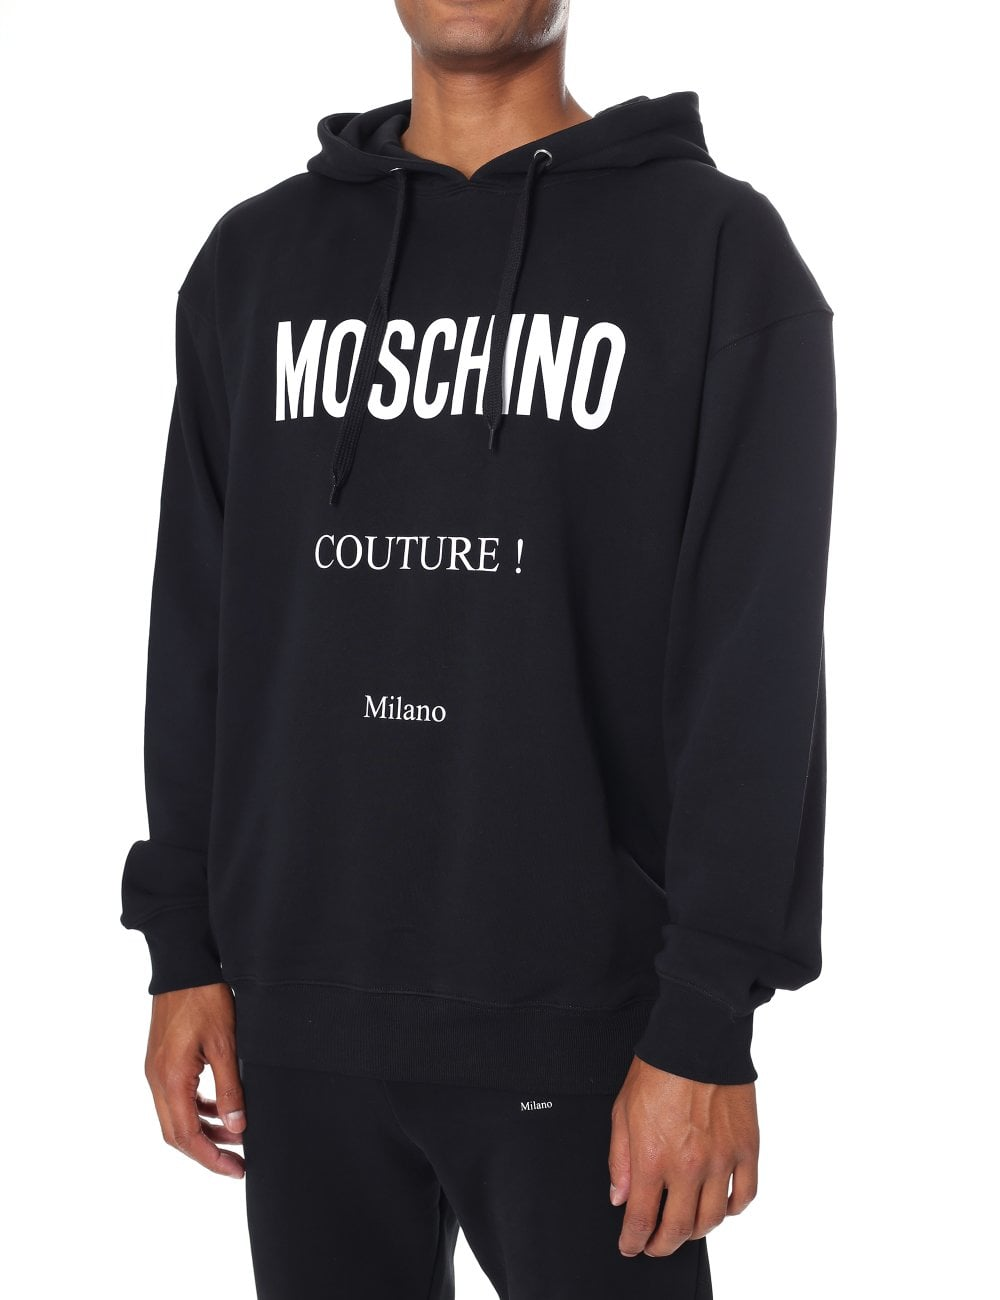 b1e36790ad Moschino Couture Men's Logo Hooded Pullover Sweat Top